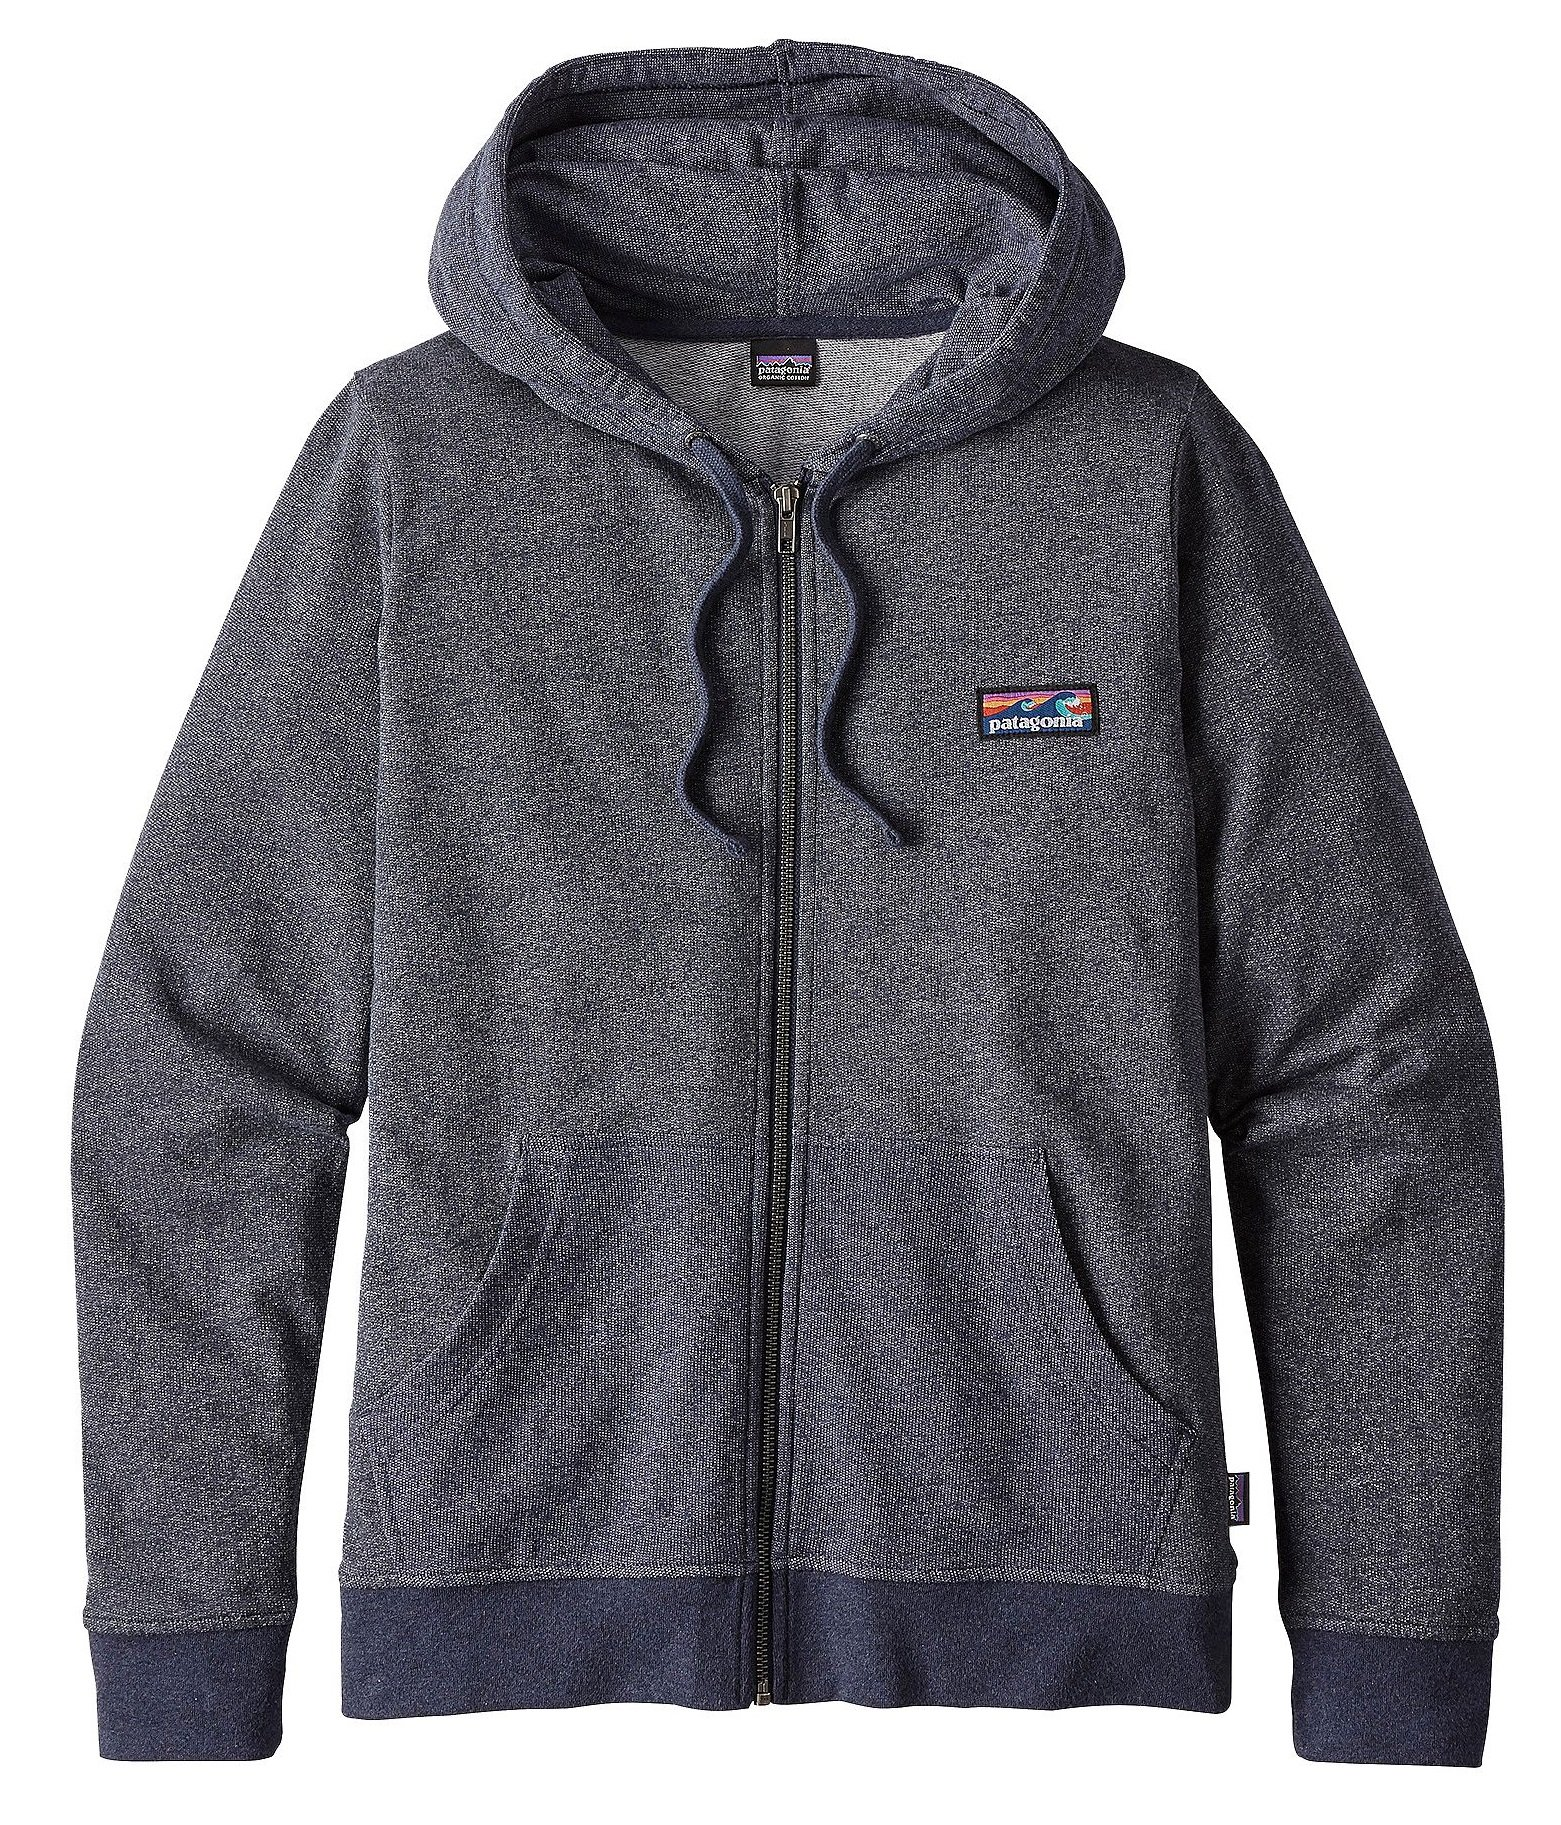 Patagonia Women's Board Short Label Lightweight Full Zip Hoodie (S, Smolder Blue)